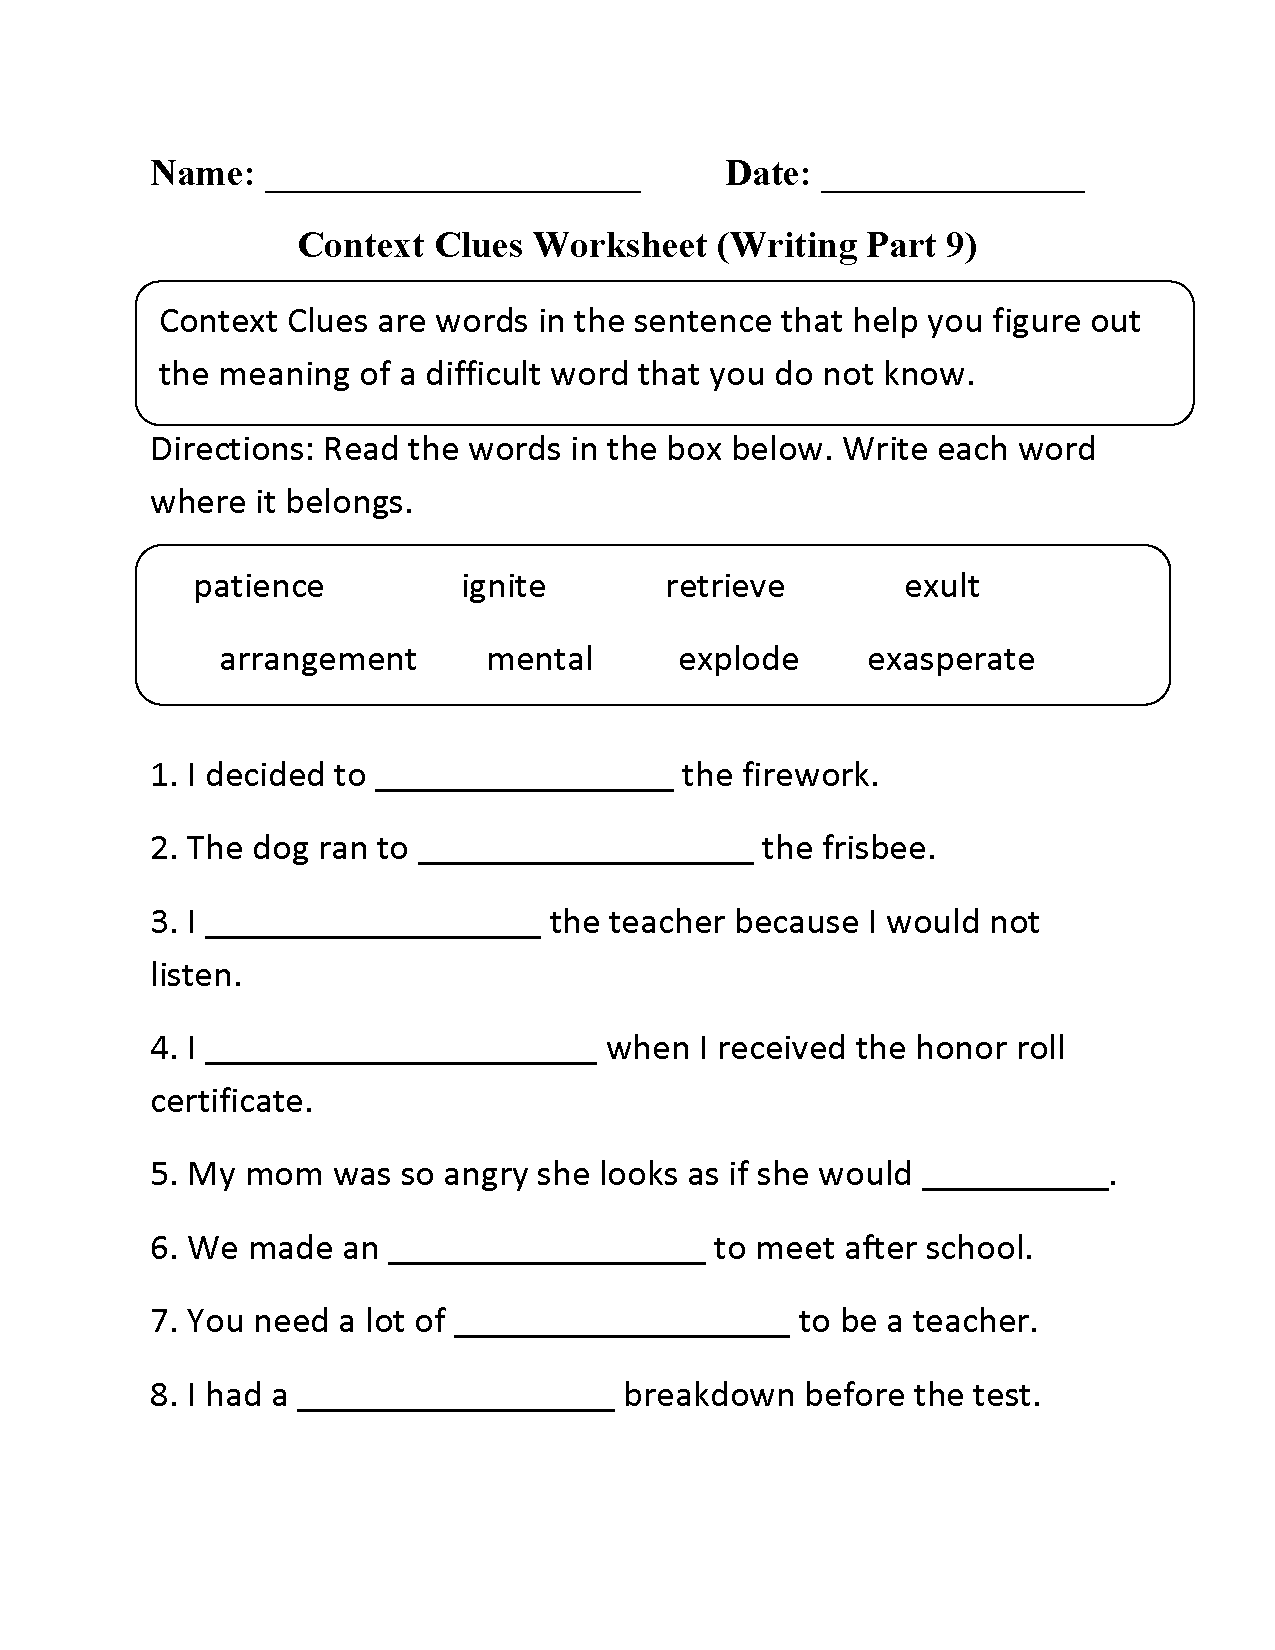 Uncategorized Using Context Clues Worksheet context clues worksheet writing part 9 intermediate language intermediate